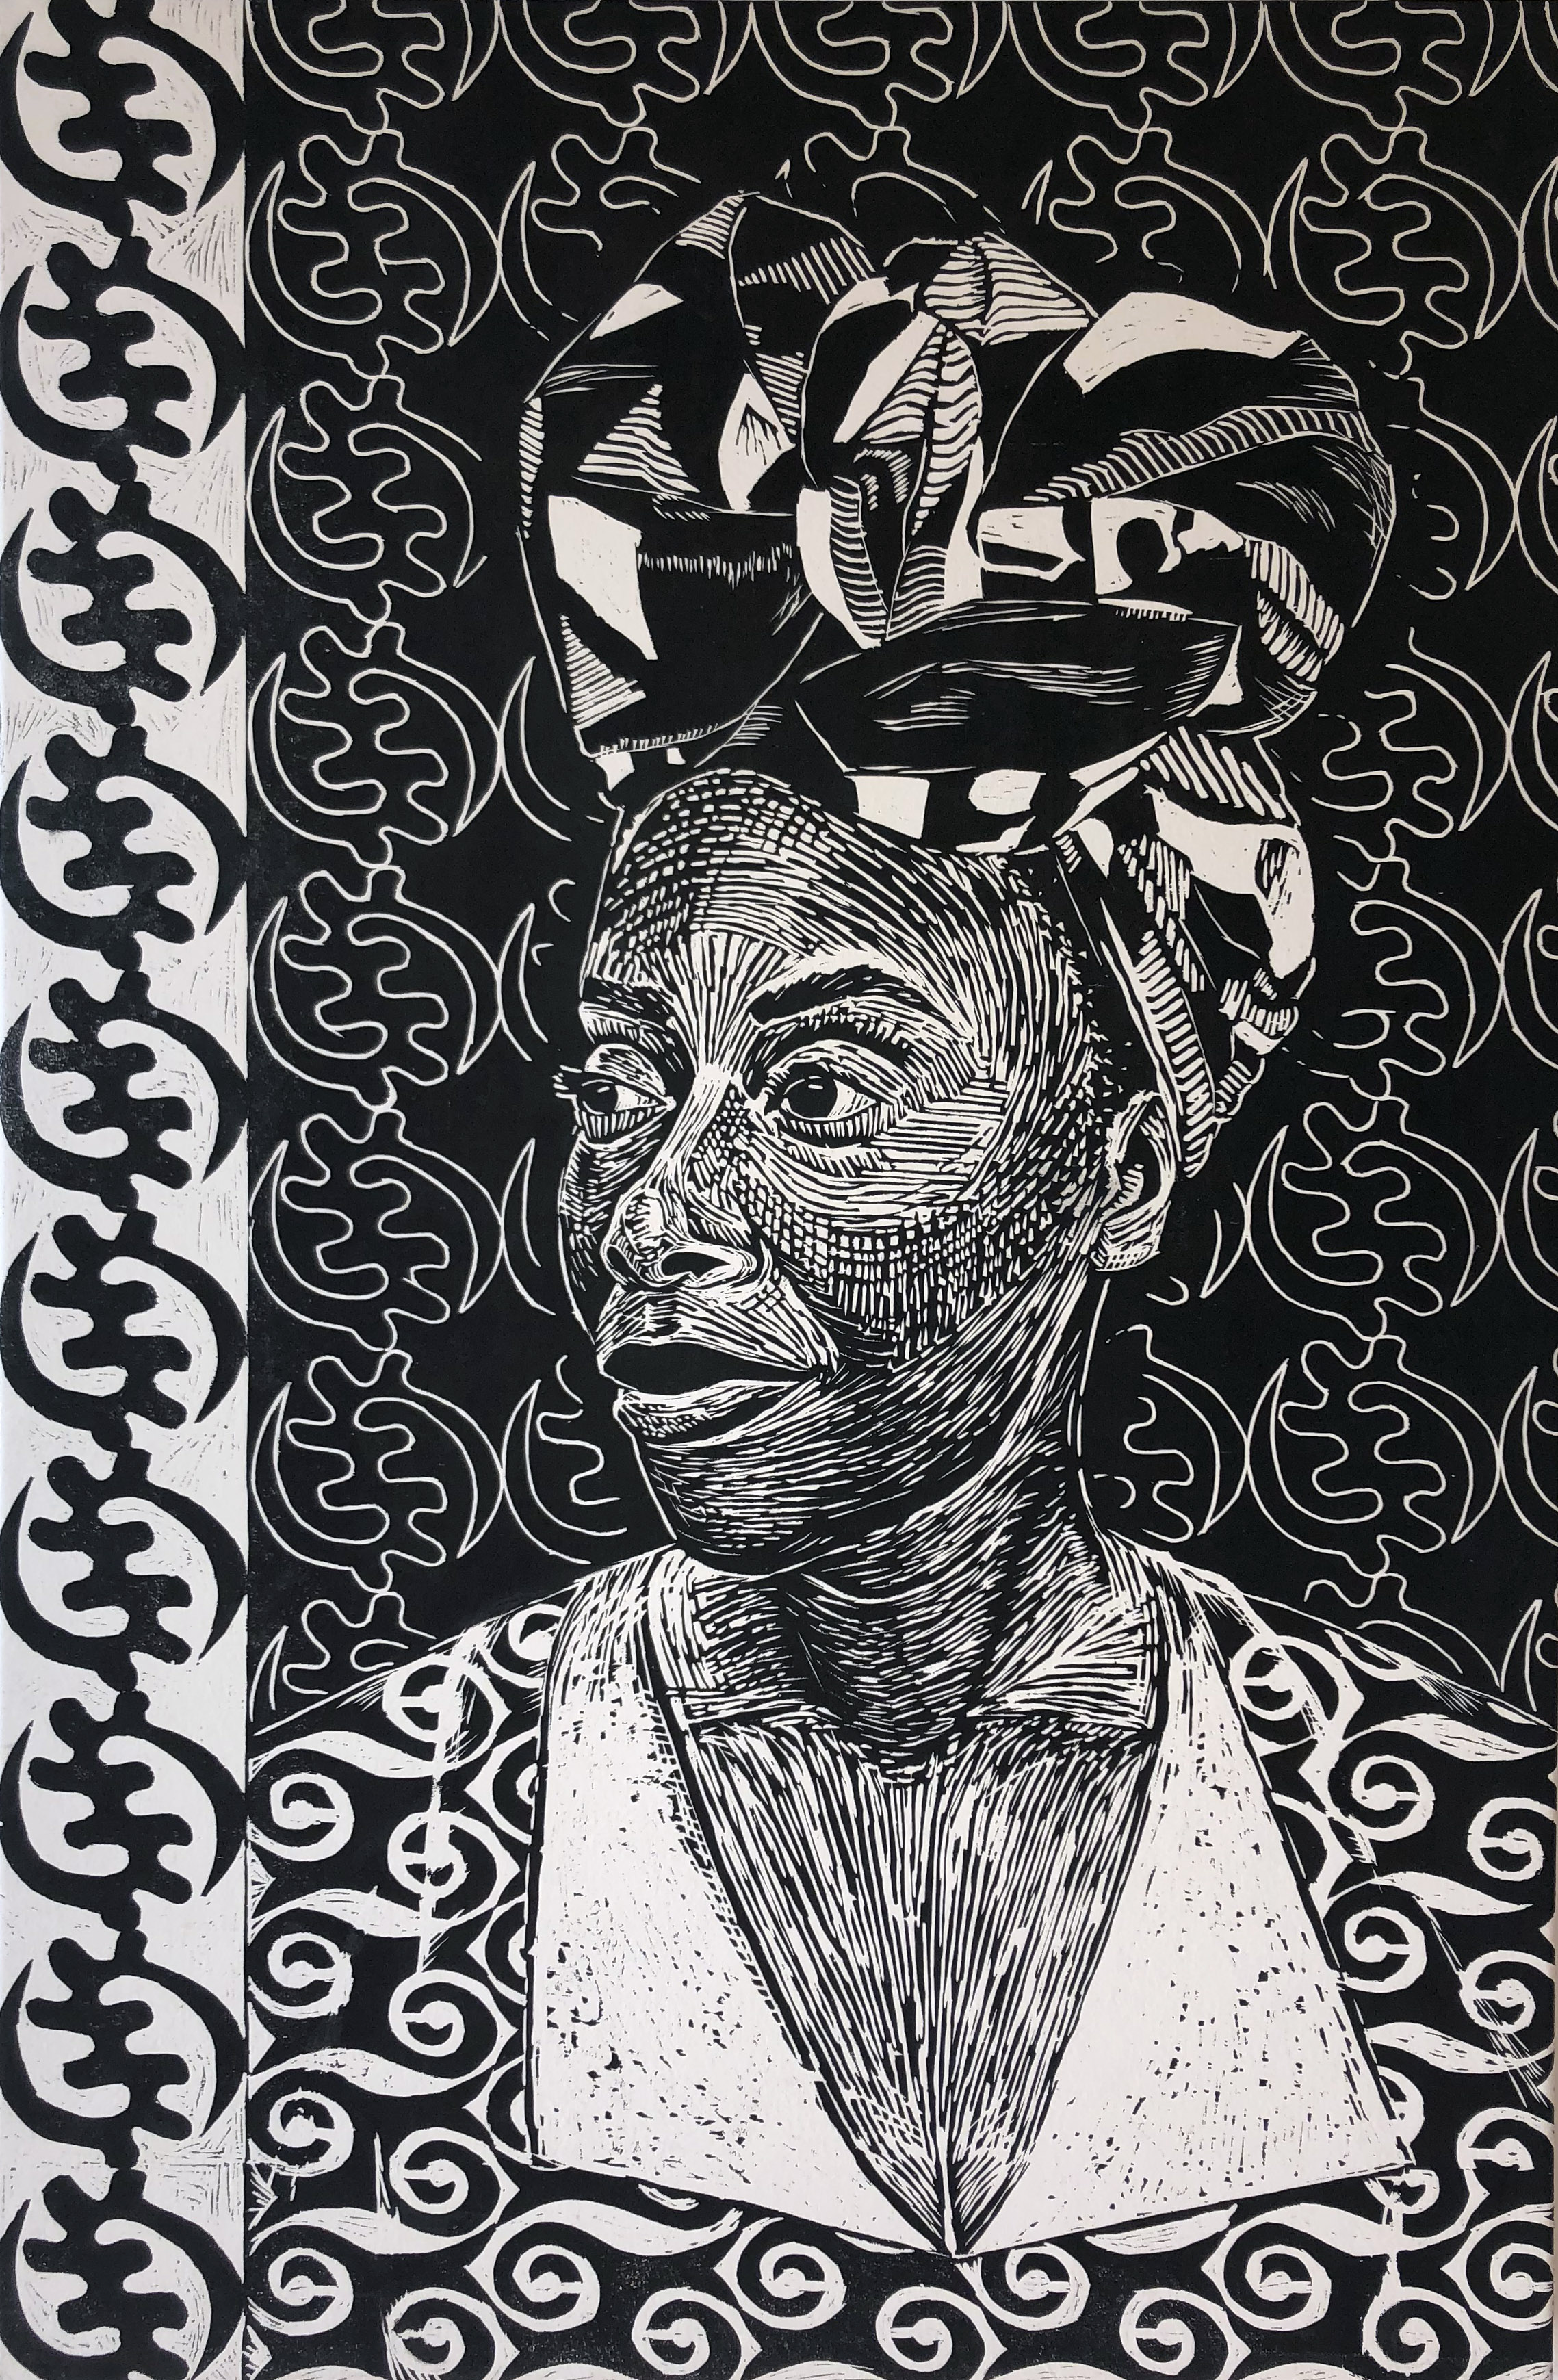 woodcut, relief carving, portrait, printmaking, ink, black women, figurative art, contemporary art